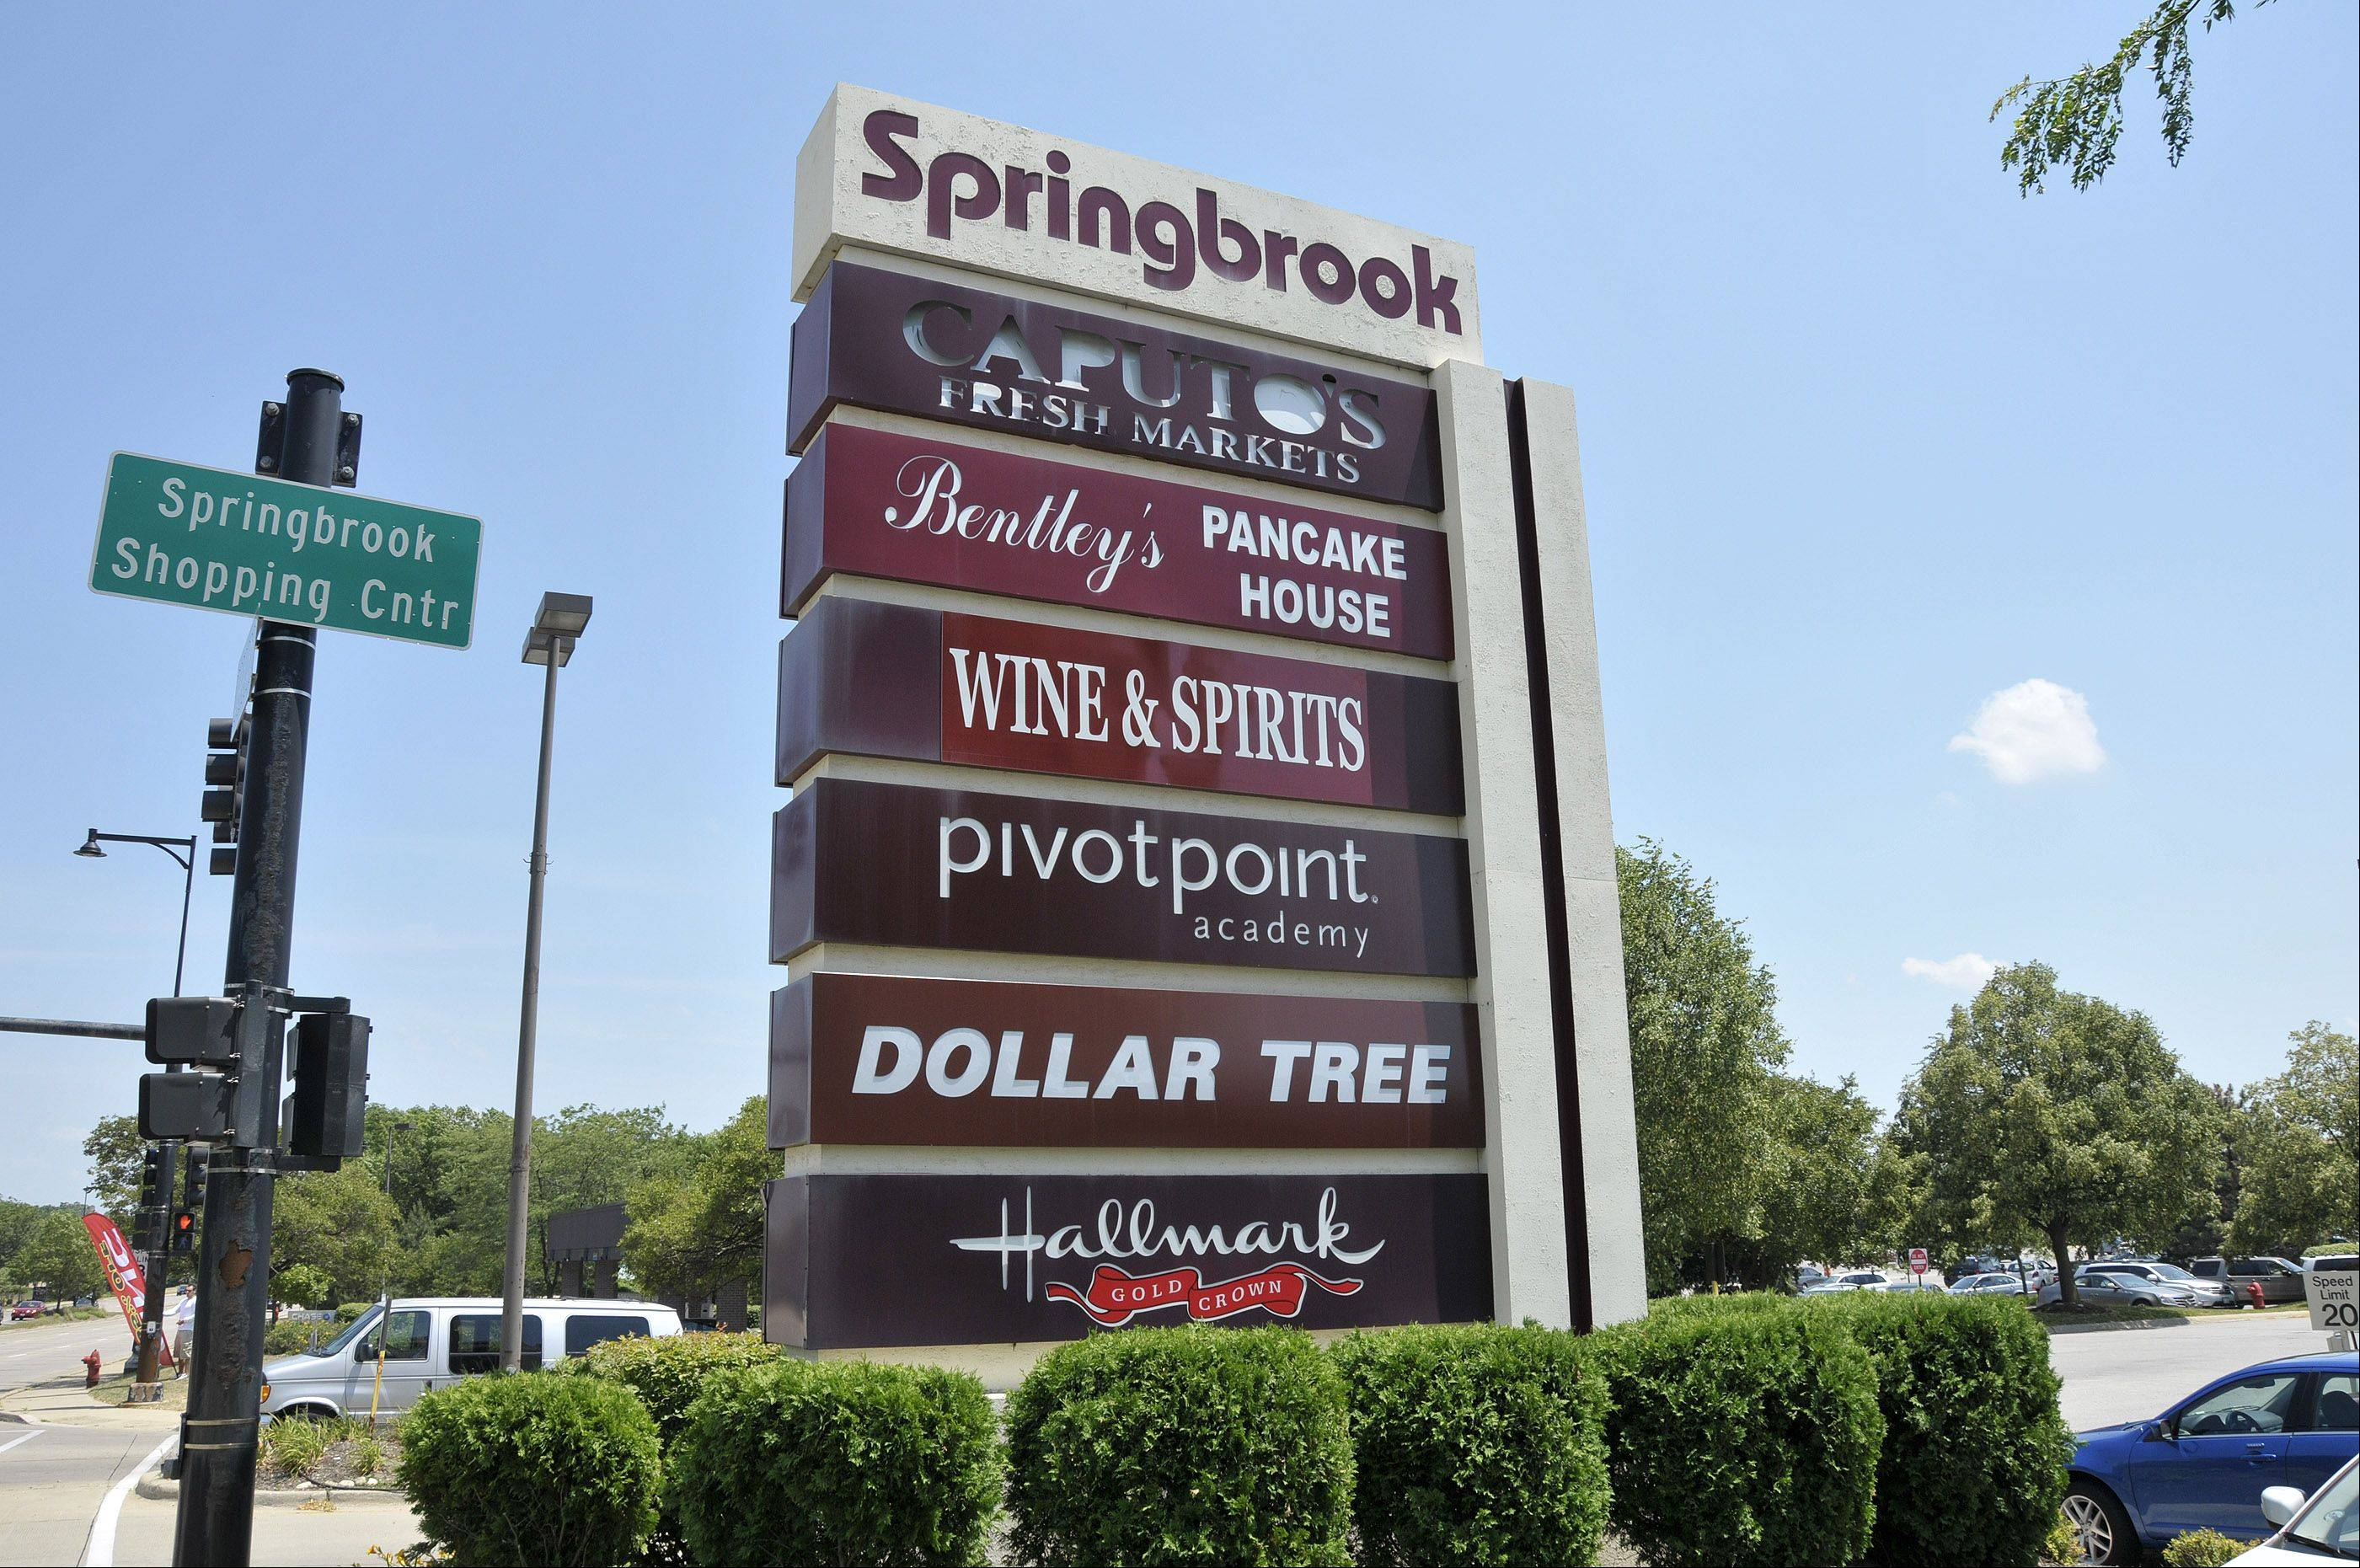 Bloomingdale officials are considering a $4.7 million plan to revitalize Springbrook Shopping Center on Lake Street.